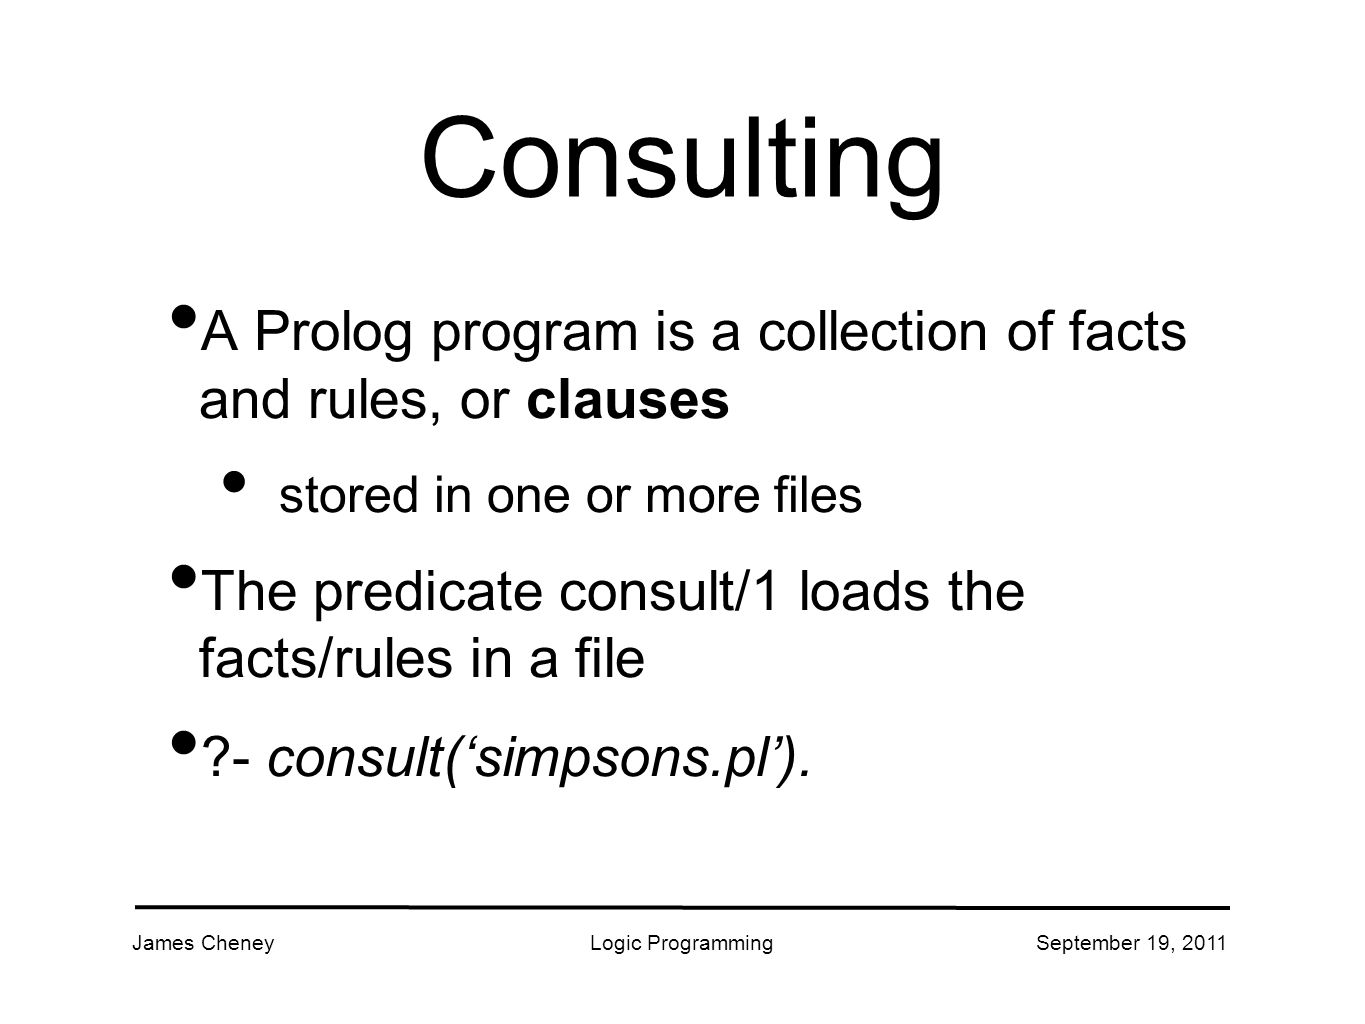 James CheneyLogic ProgrammingSeptember 19, 2011 Consulting A Prolog program is a collection of facts and rules, or clauses stored in one or more files The predicate consult/1 loads the facts/rules in a file - consult('simpsons.pl').